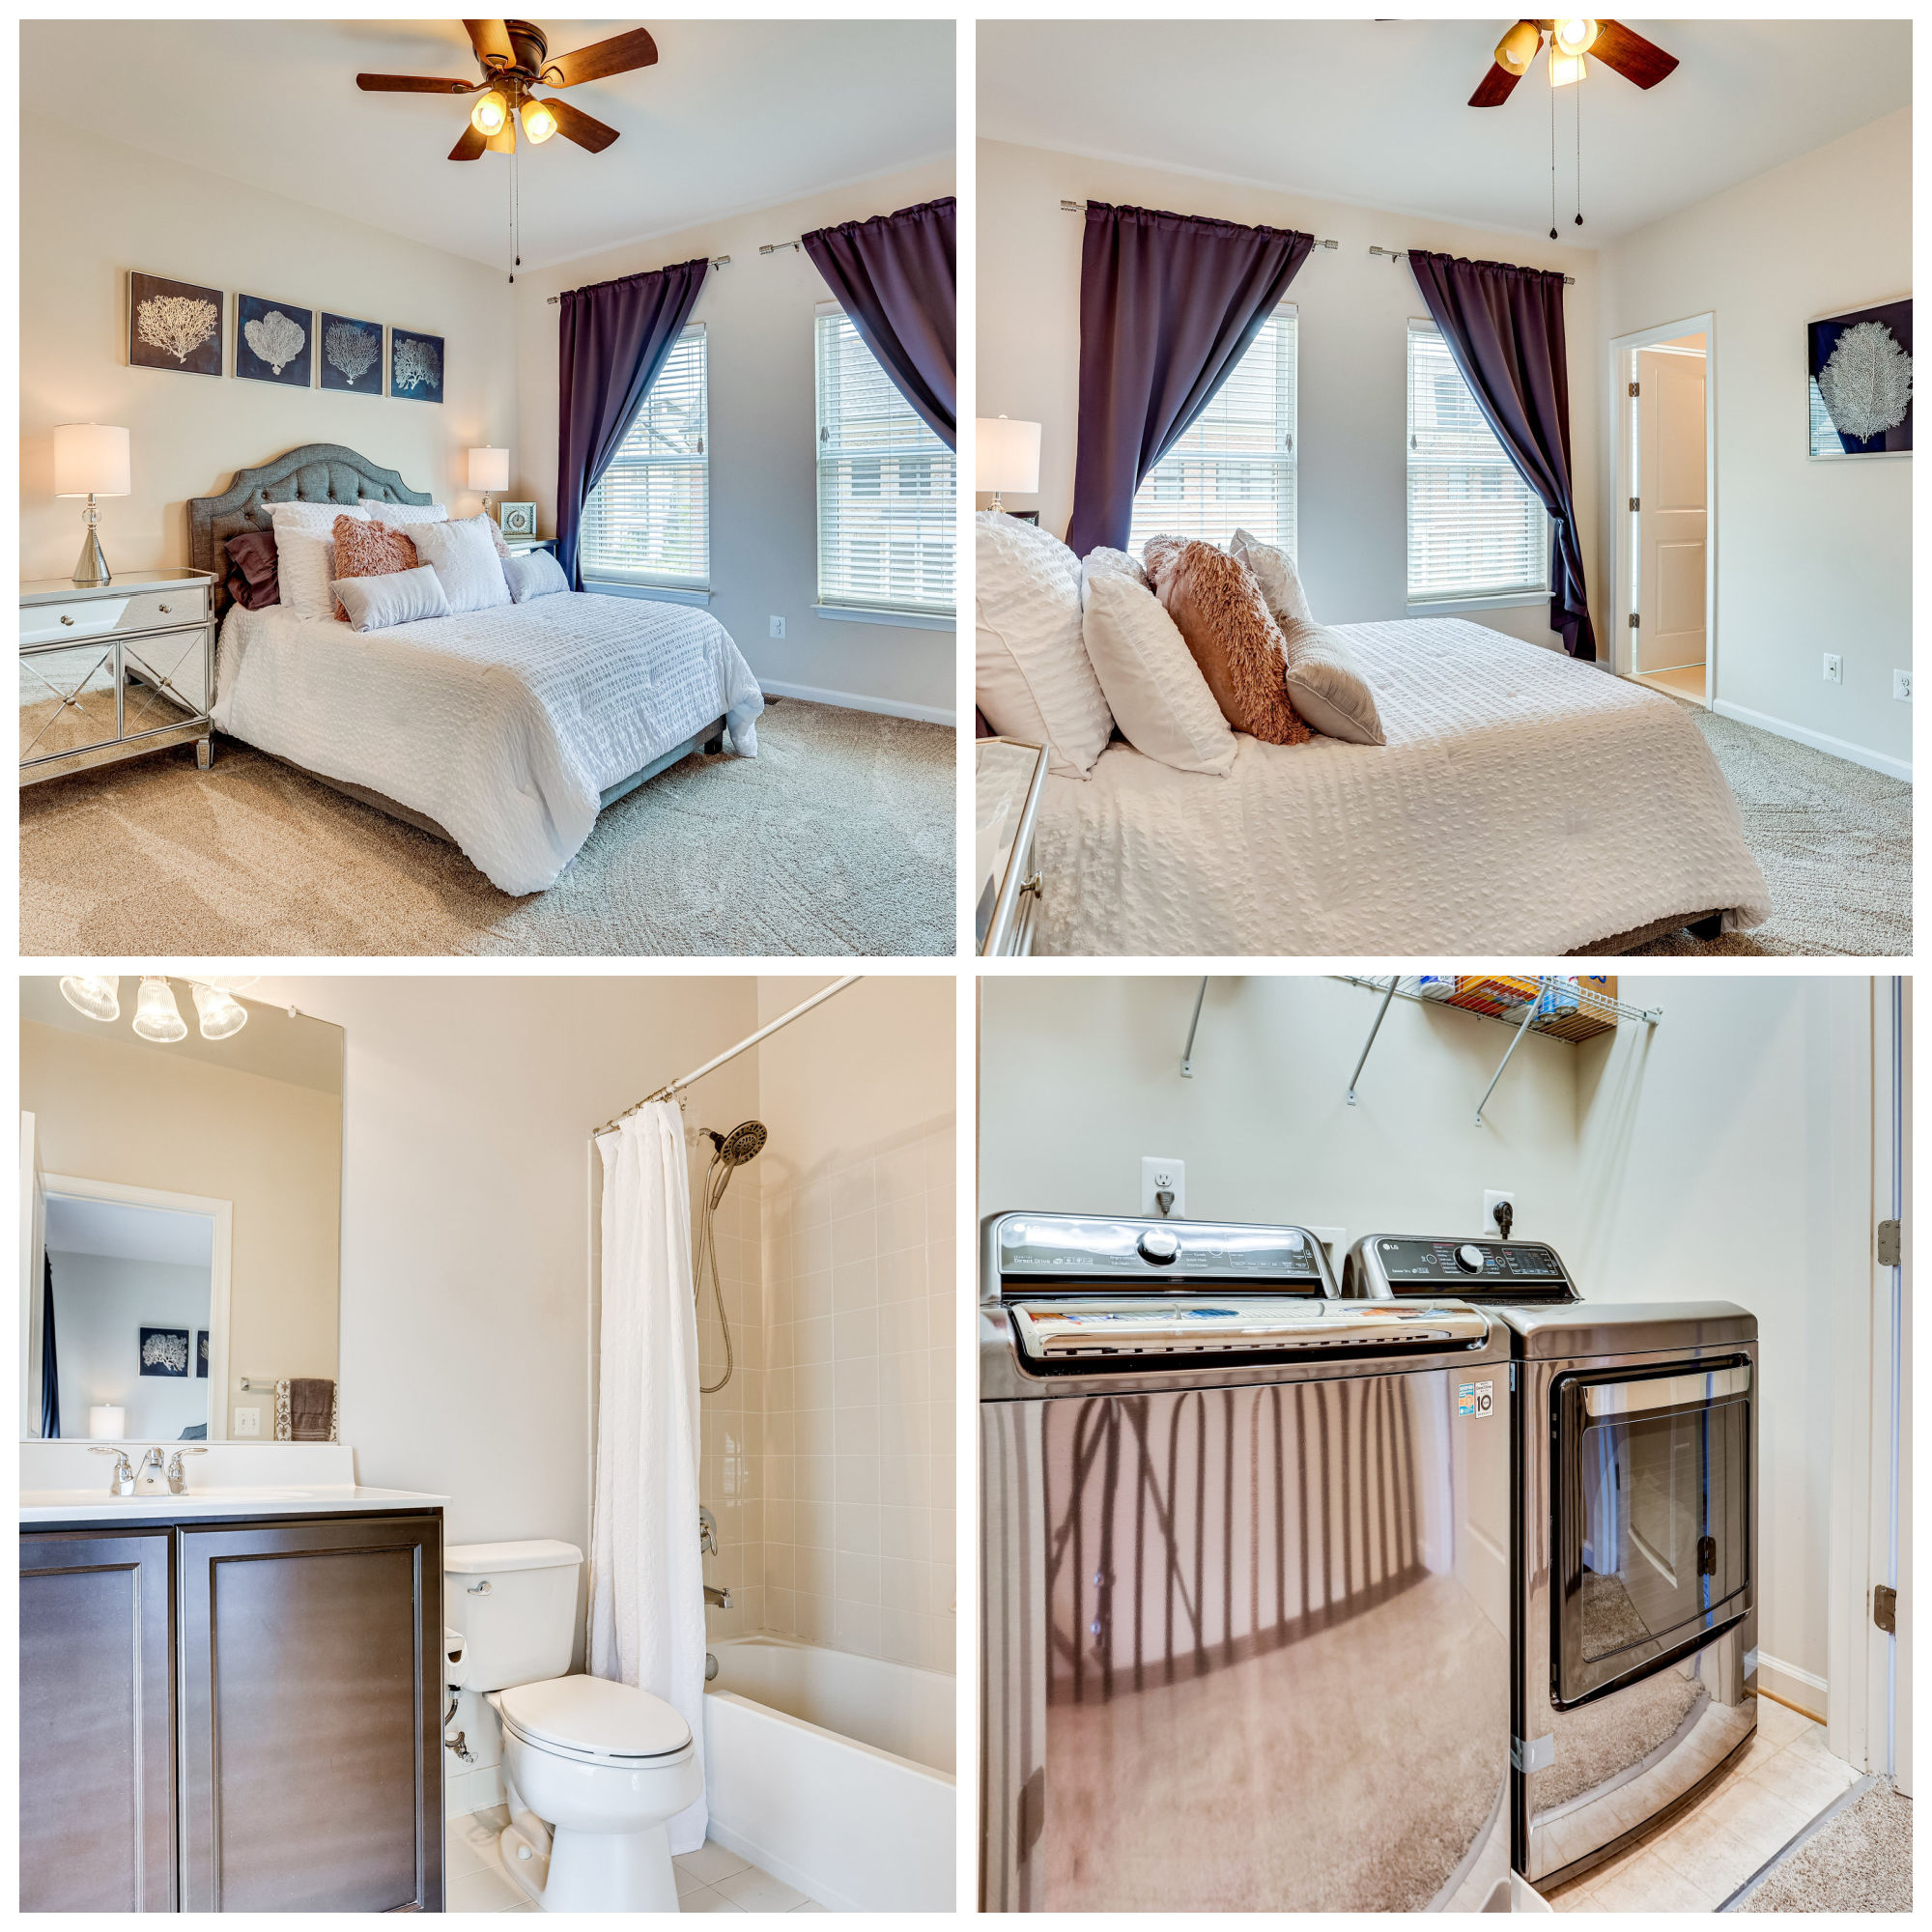 20401 Codman Dr, Ashburn- Additional Bedroom Suite and Laundry Area